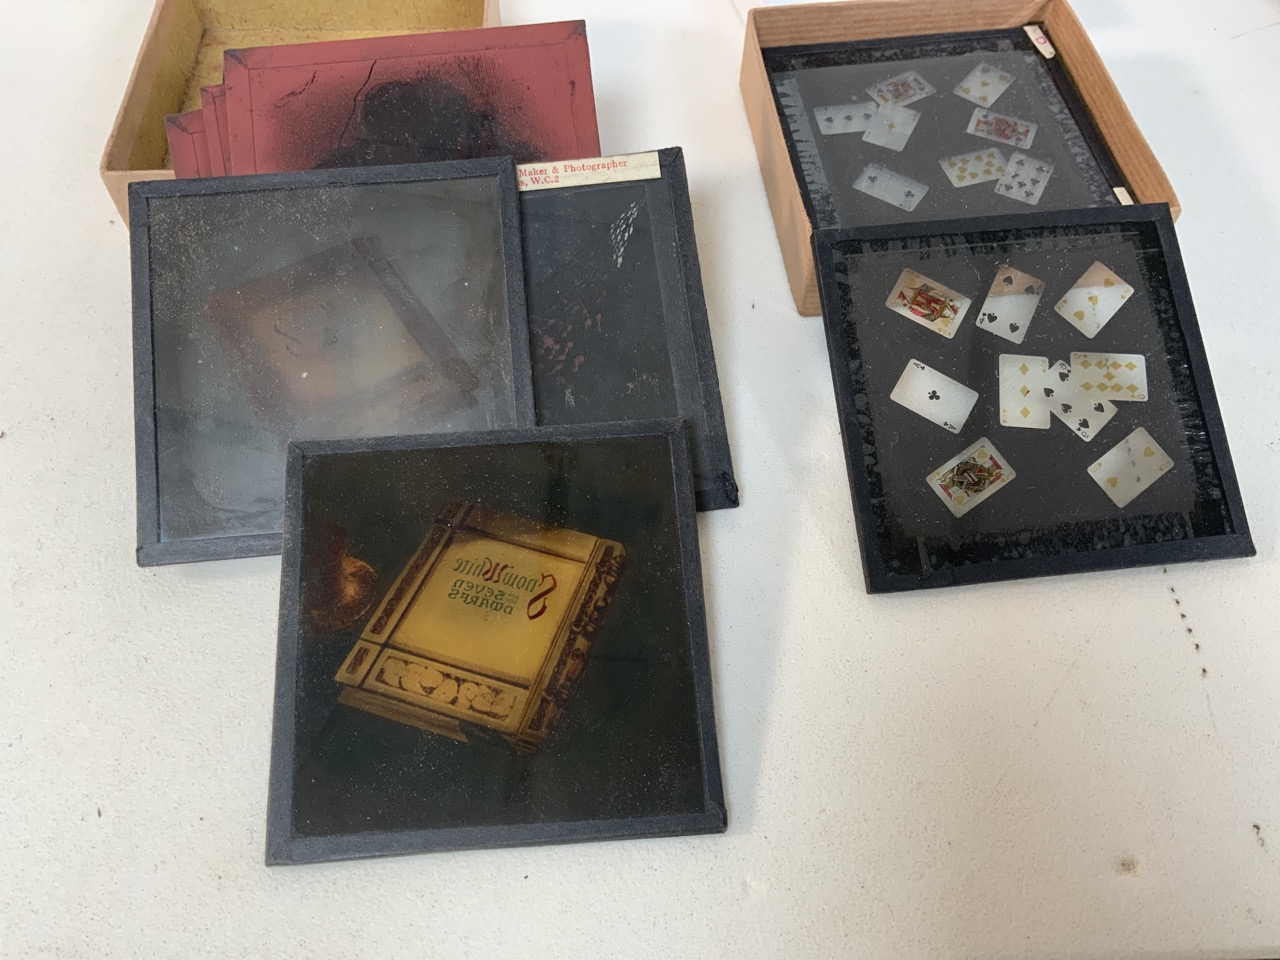 A collection of photographers glass plates including images of flowers, playing cards and - Image 4 of 4